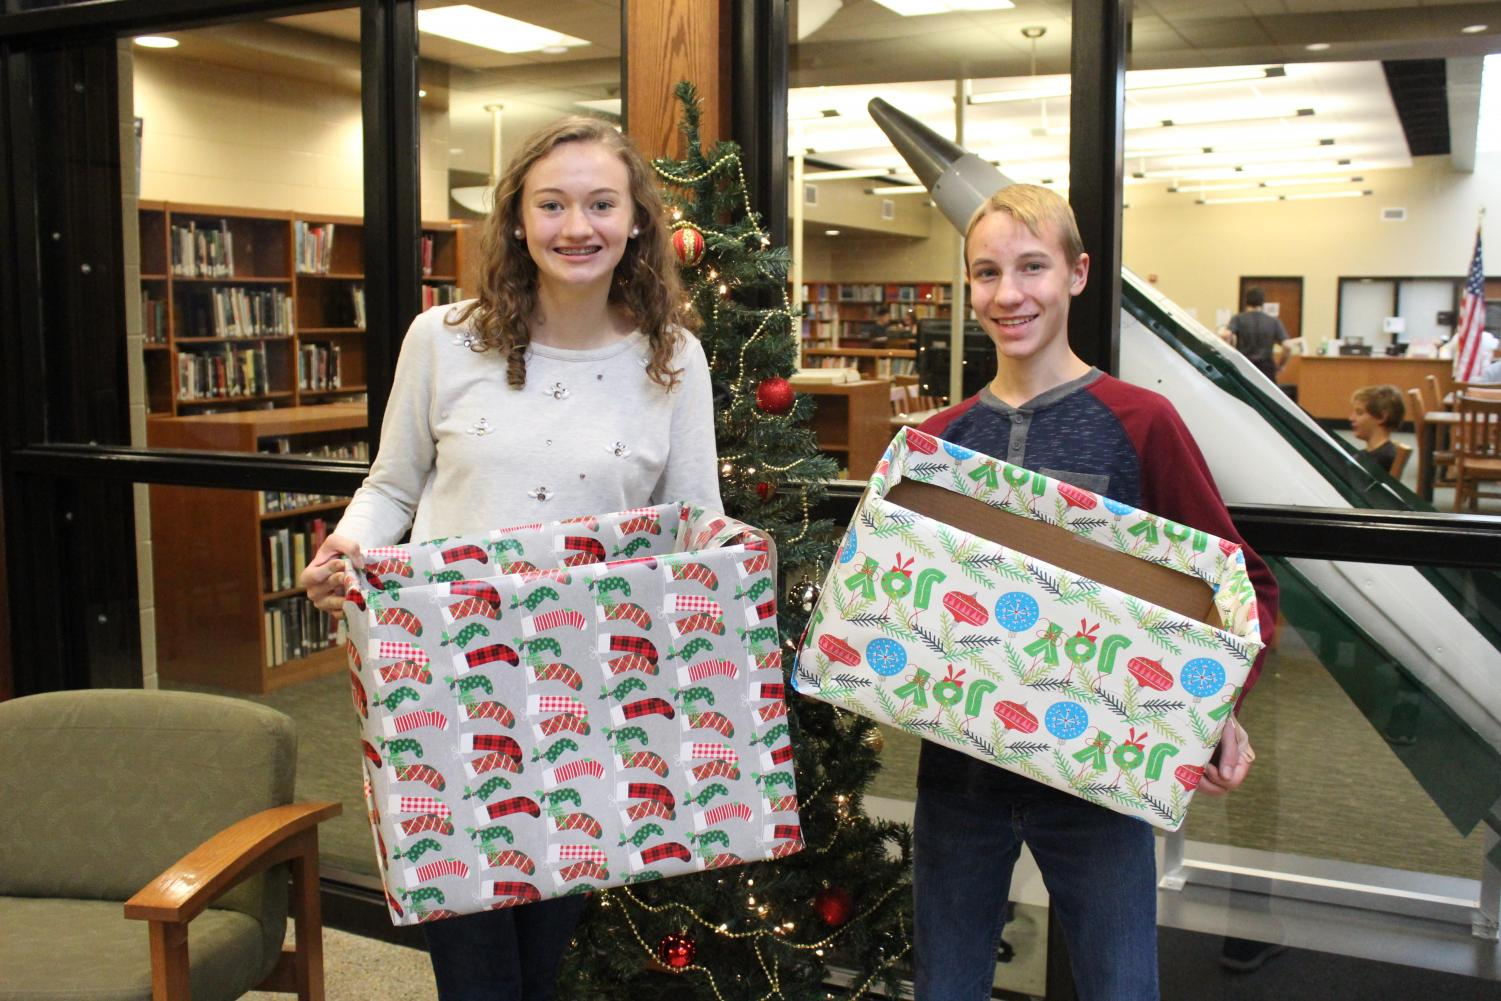 Encouraging fellow classmates, Claire Kriner (11) and Timothy Helman (9) get excited for the holiday season.